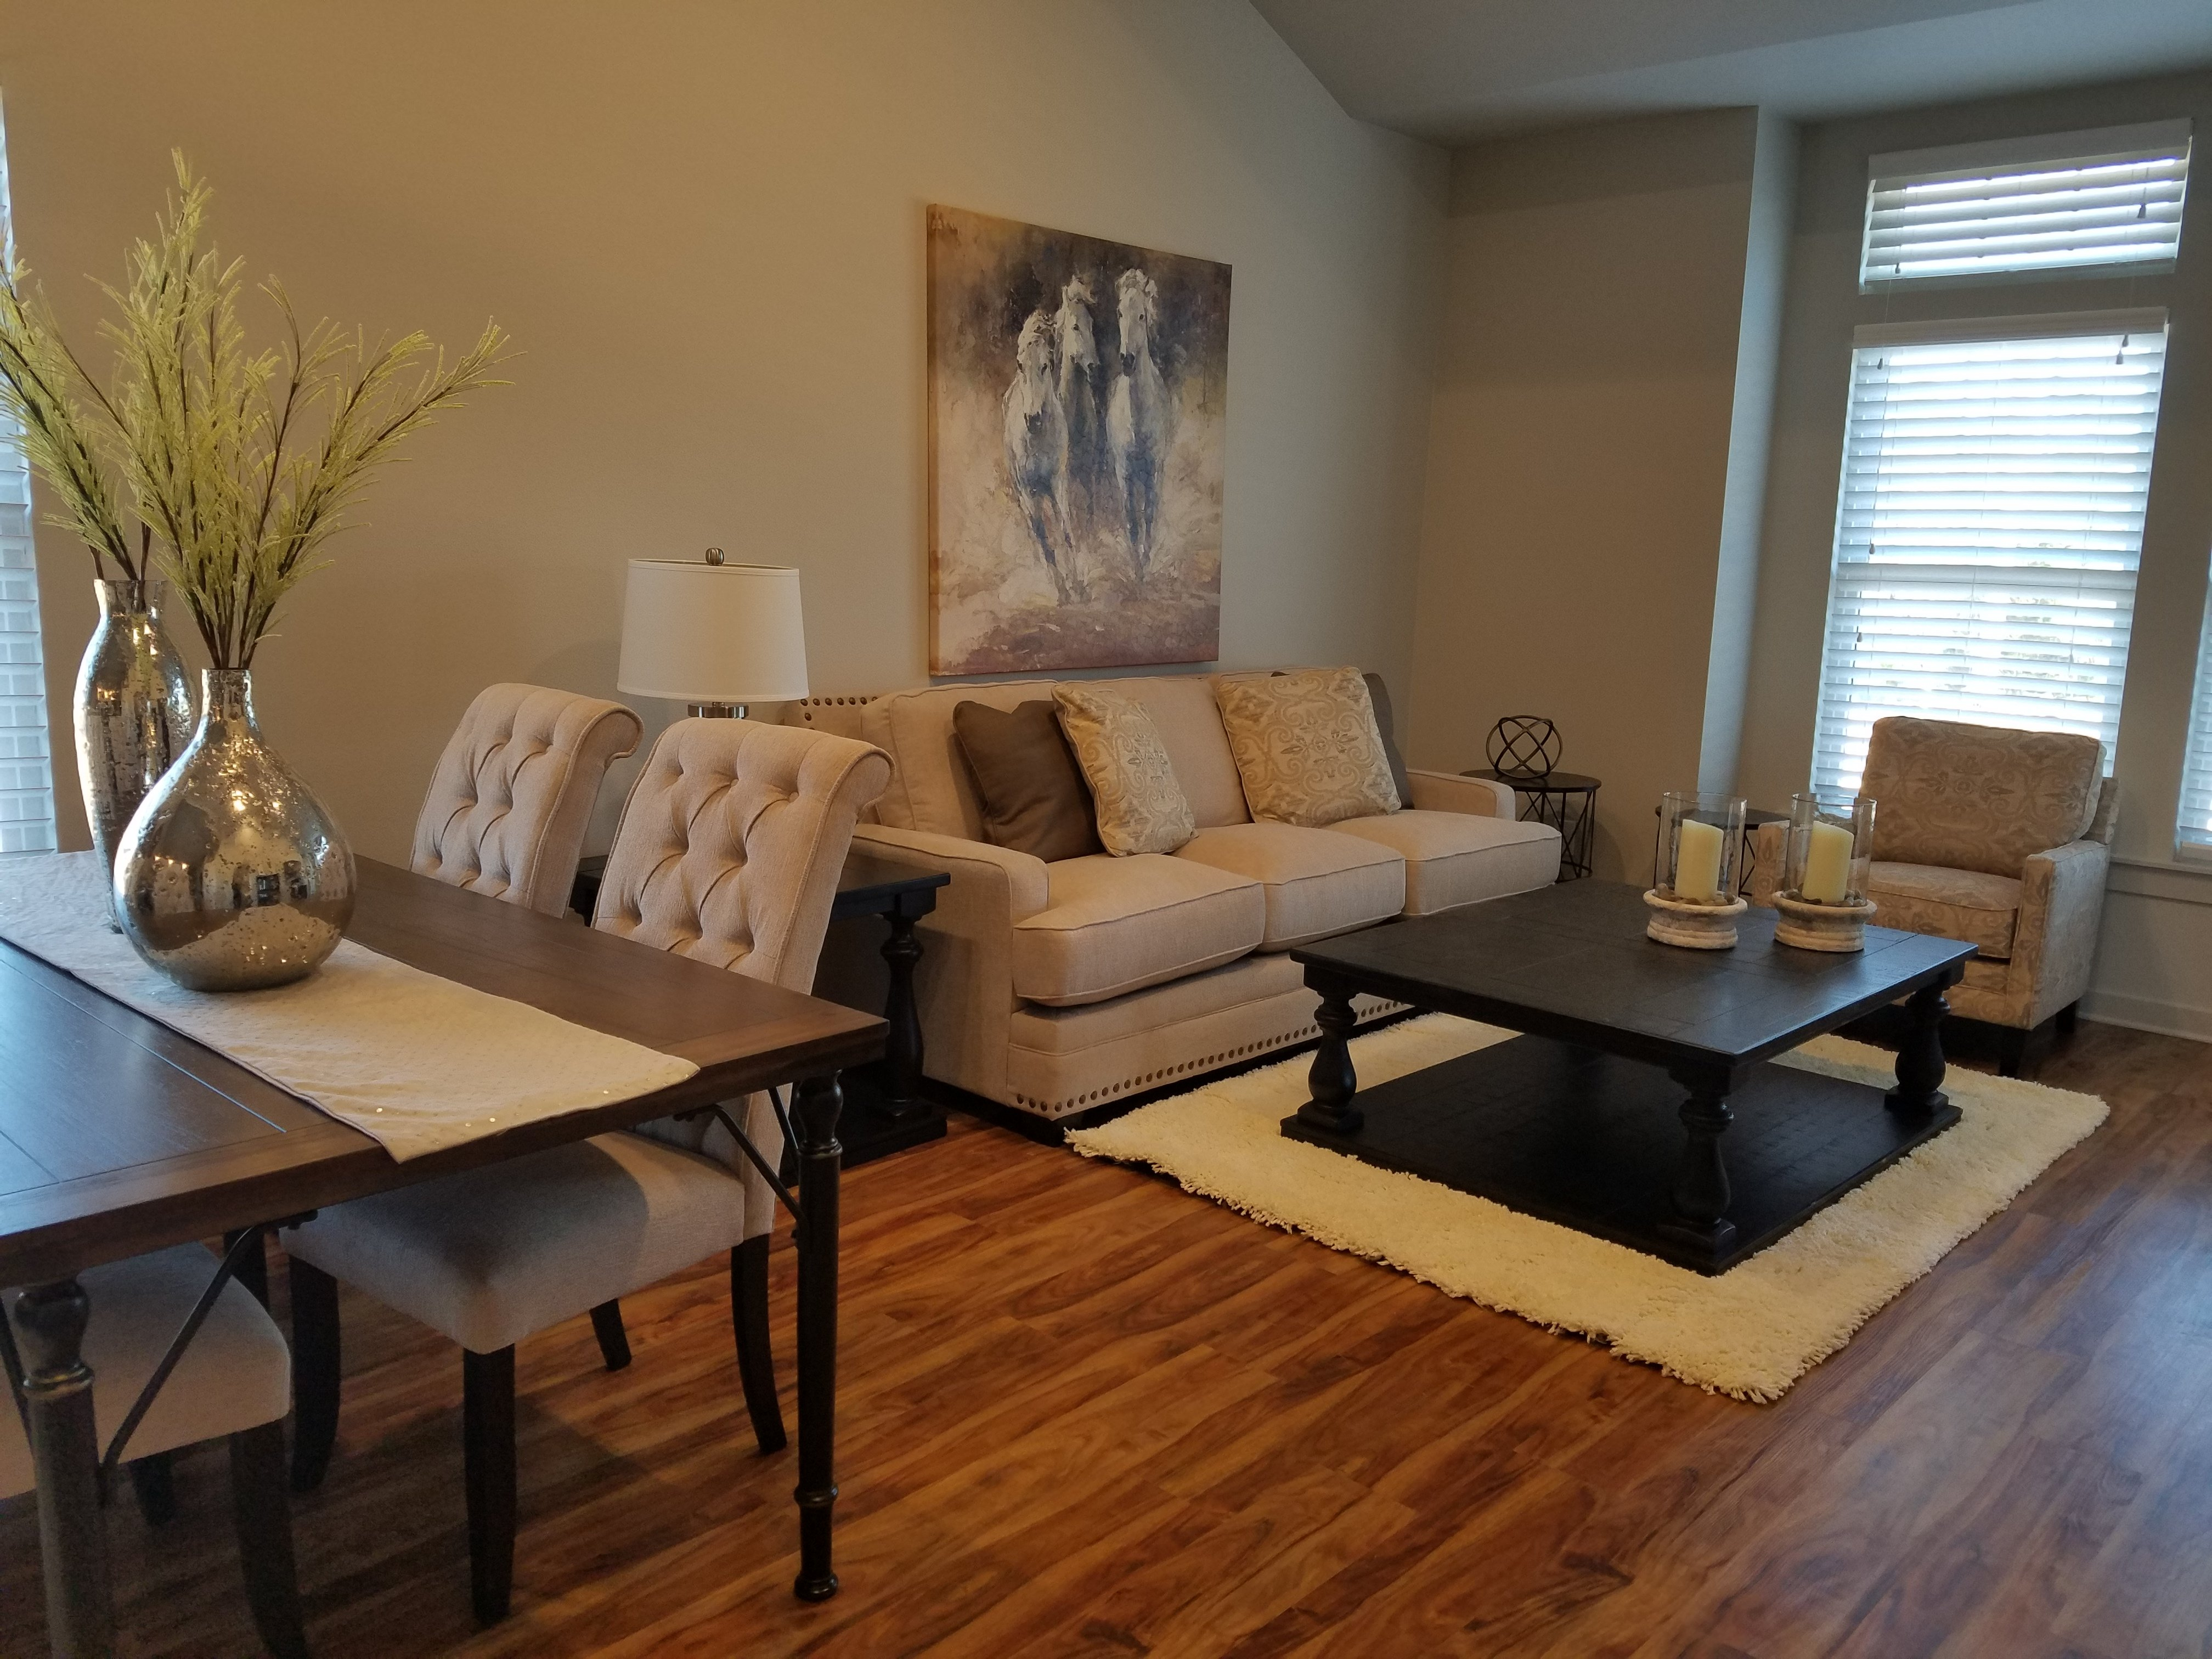 homes for rent Maumelle AR